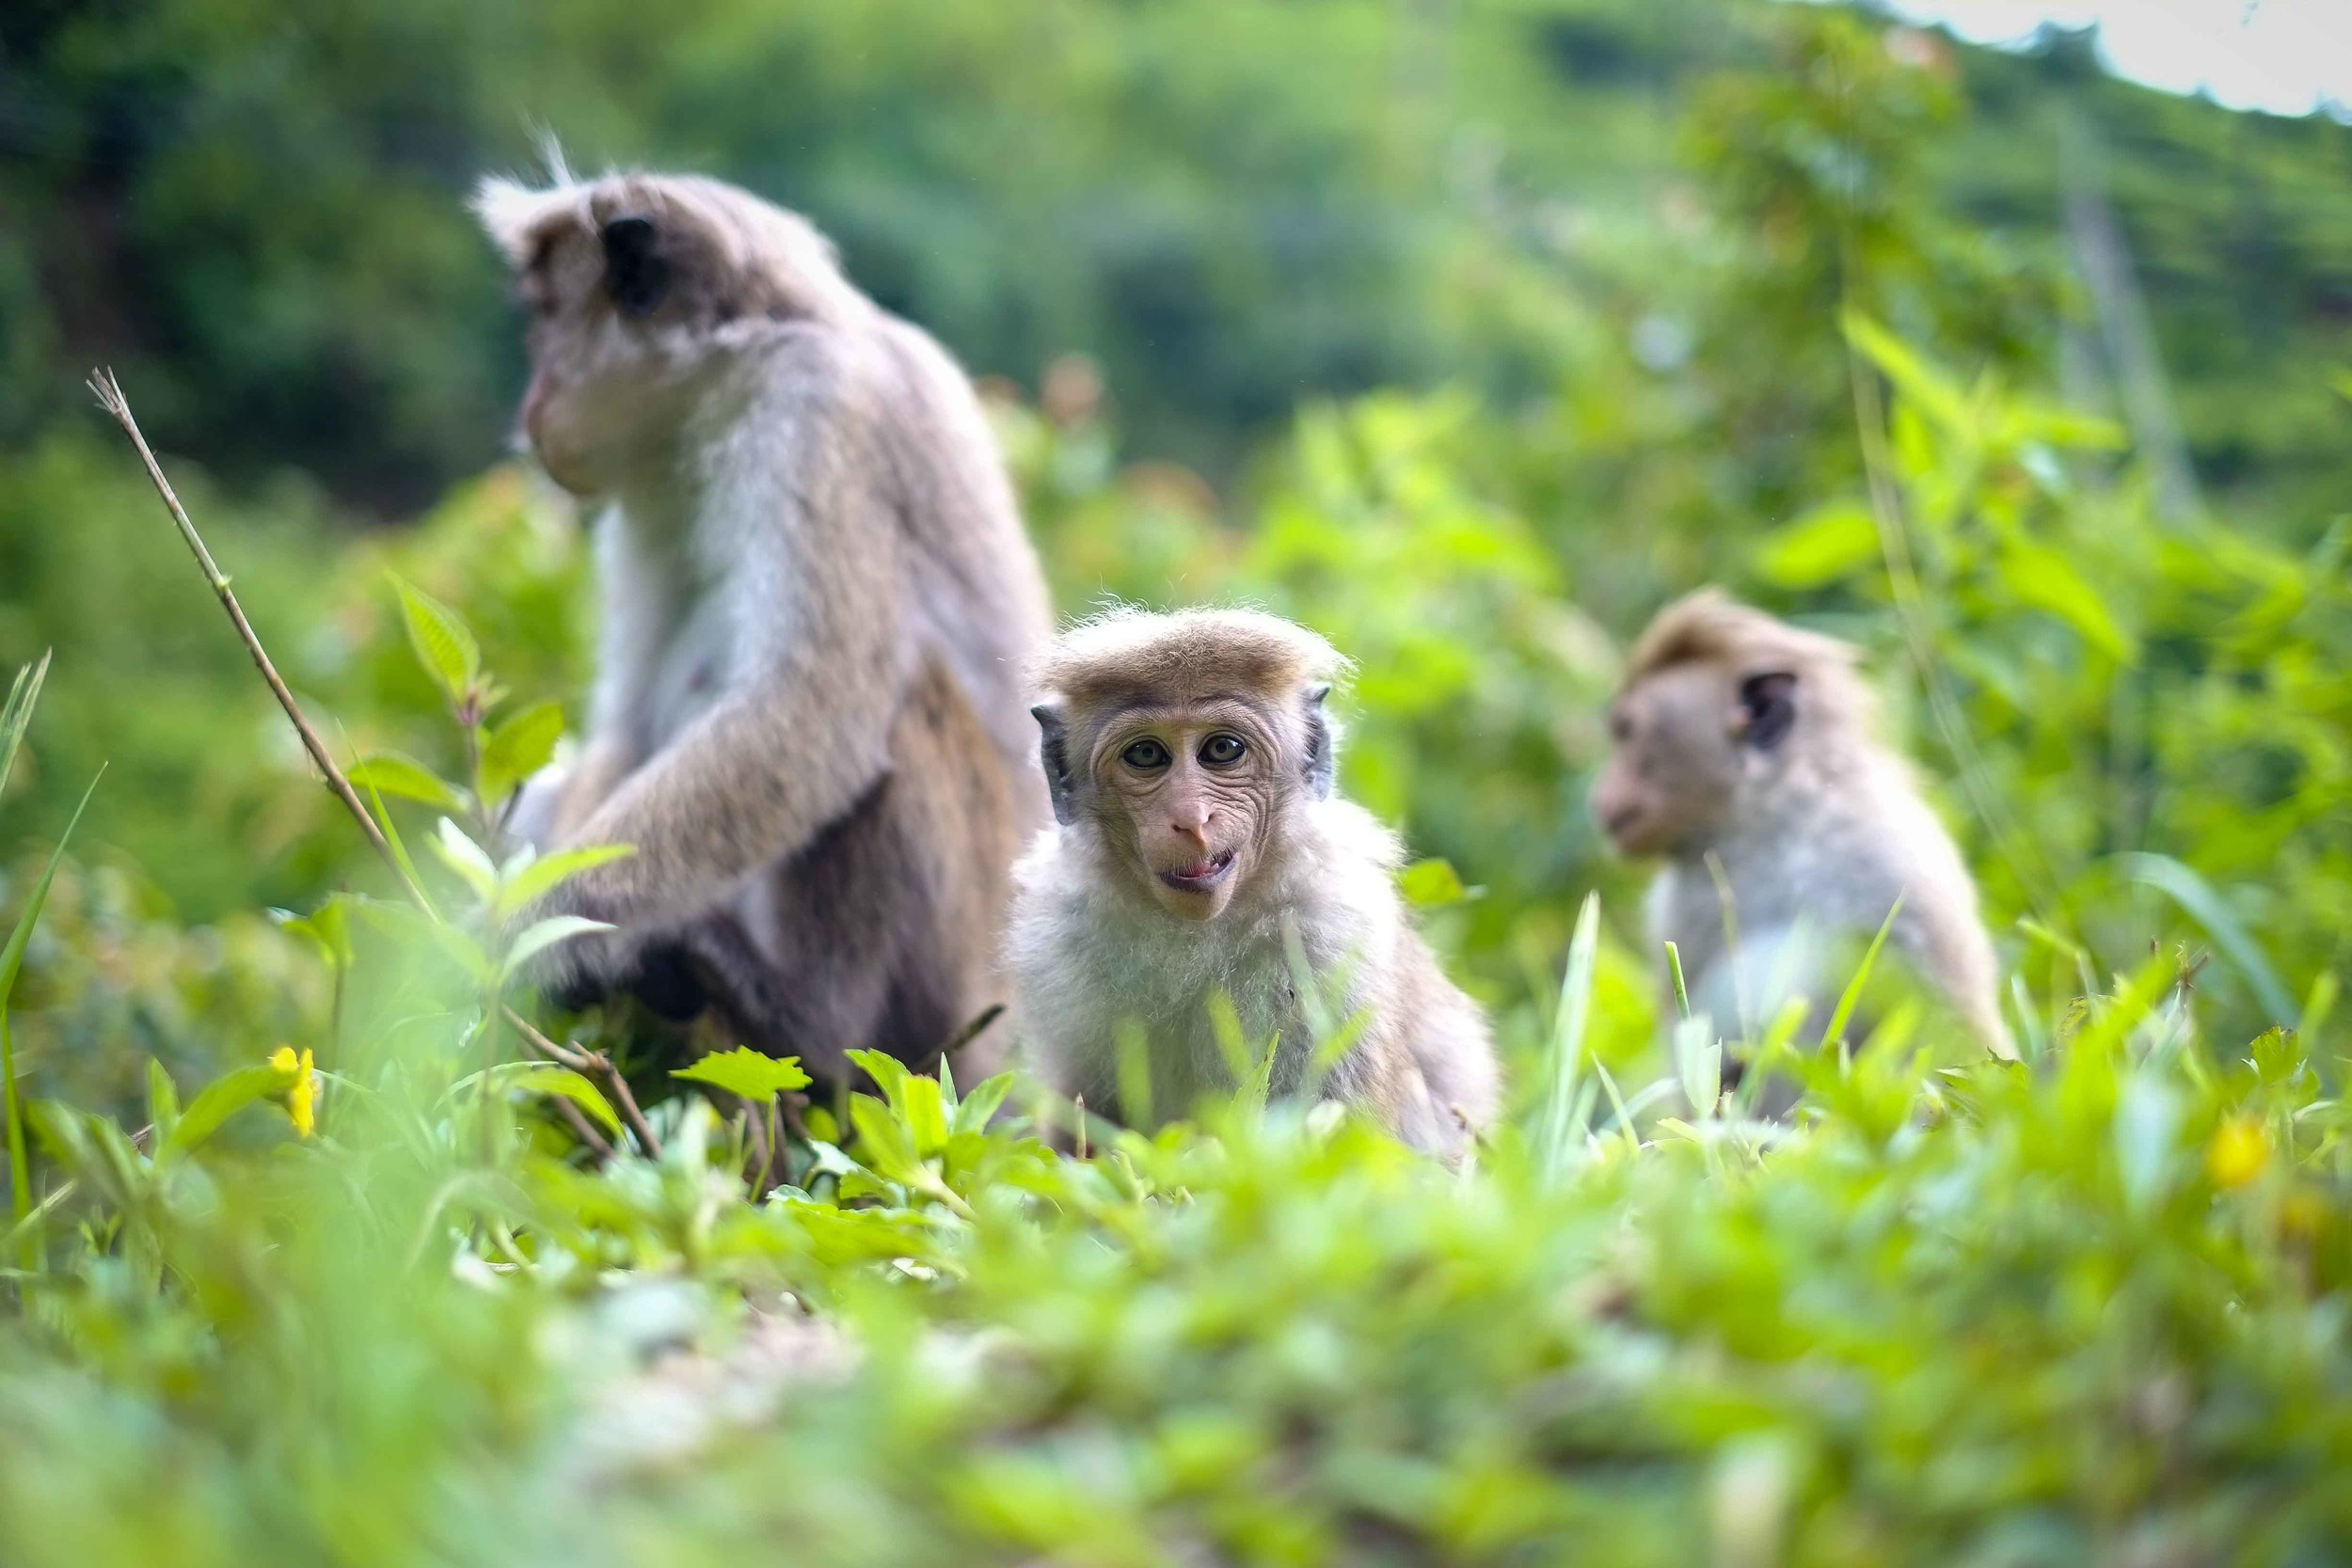 Monkeys: arguably the most hilarious of all animals in Sri Lanka.